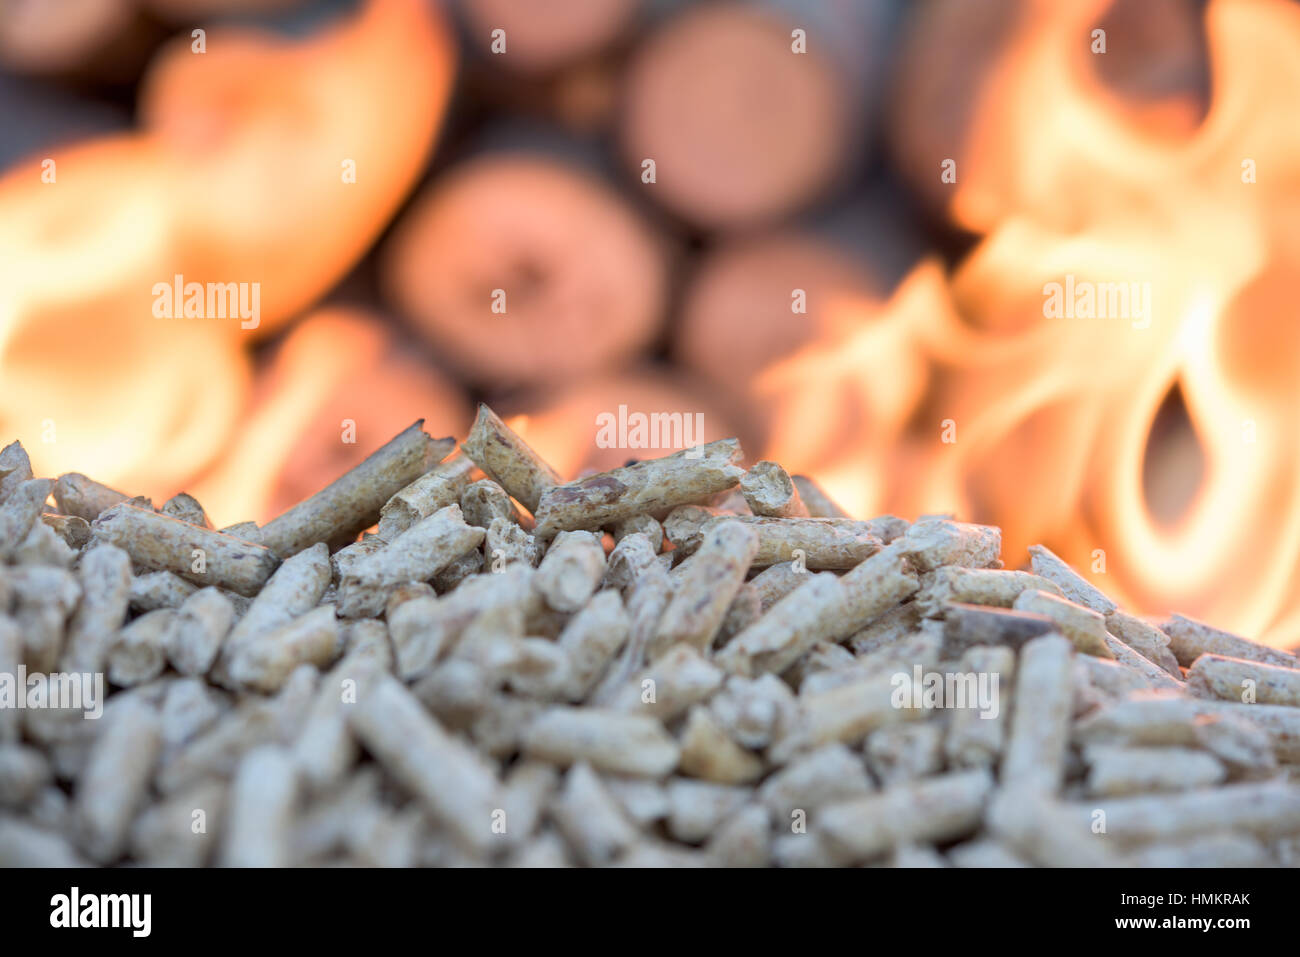 wooden Biomass in flames infront wall of wood - Stock Image